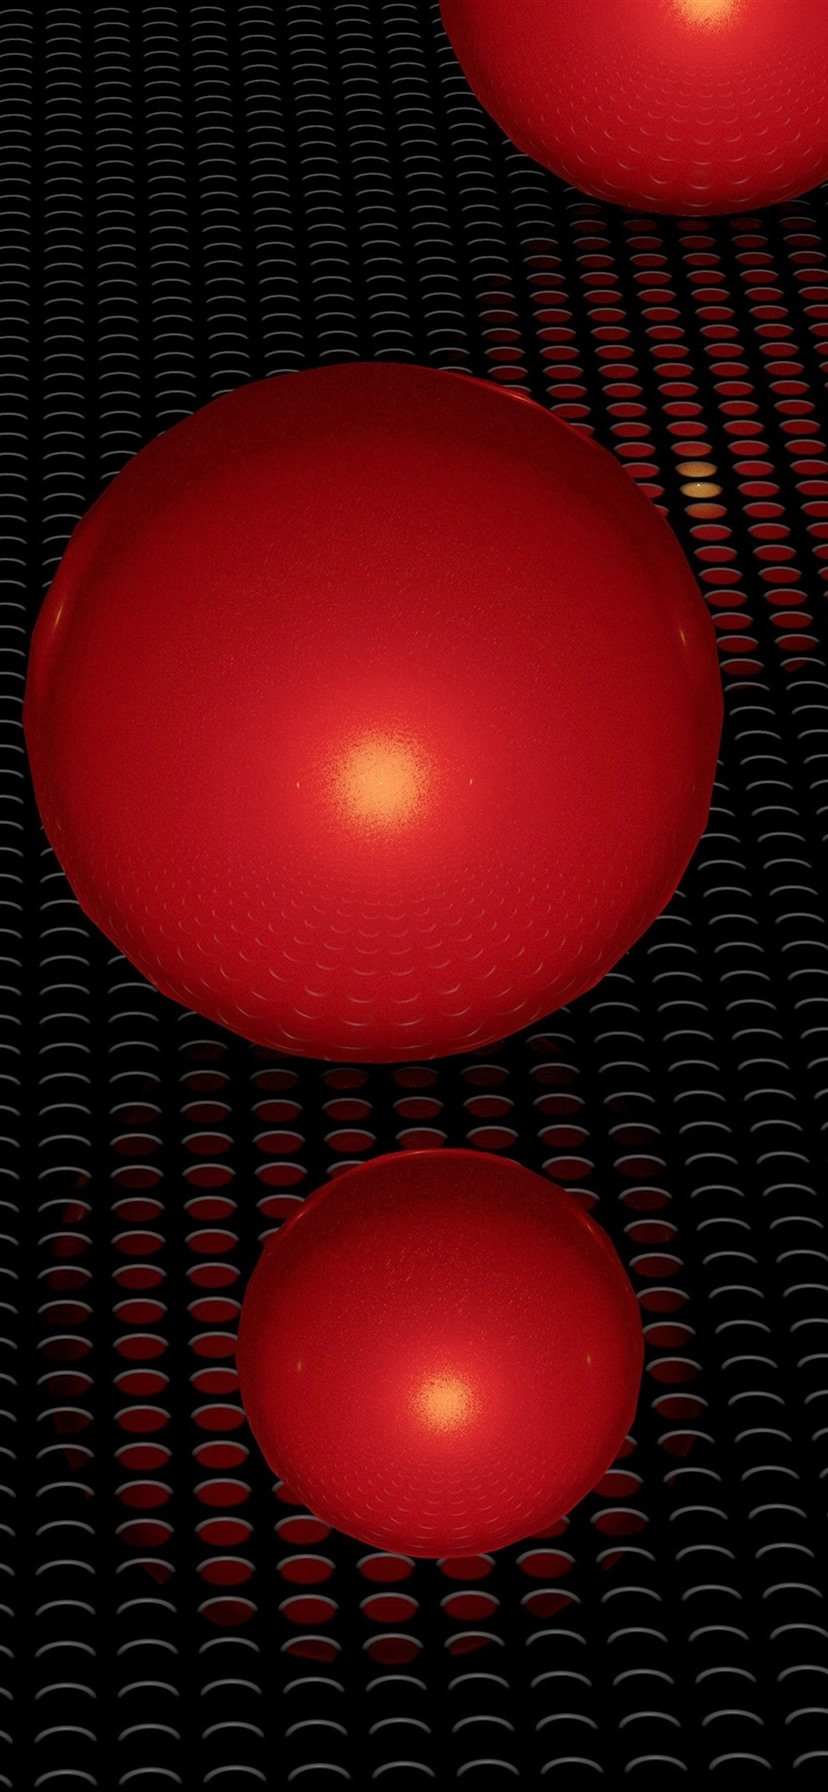 Red 3d Balls Surface 1080x1920 Iphone 8 7 6 6s Plus